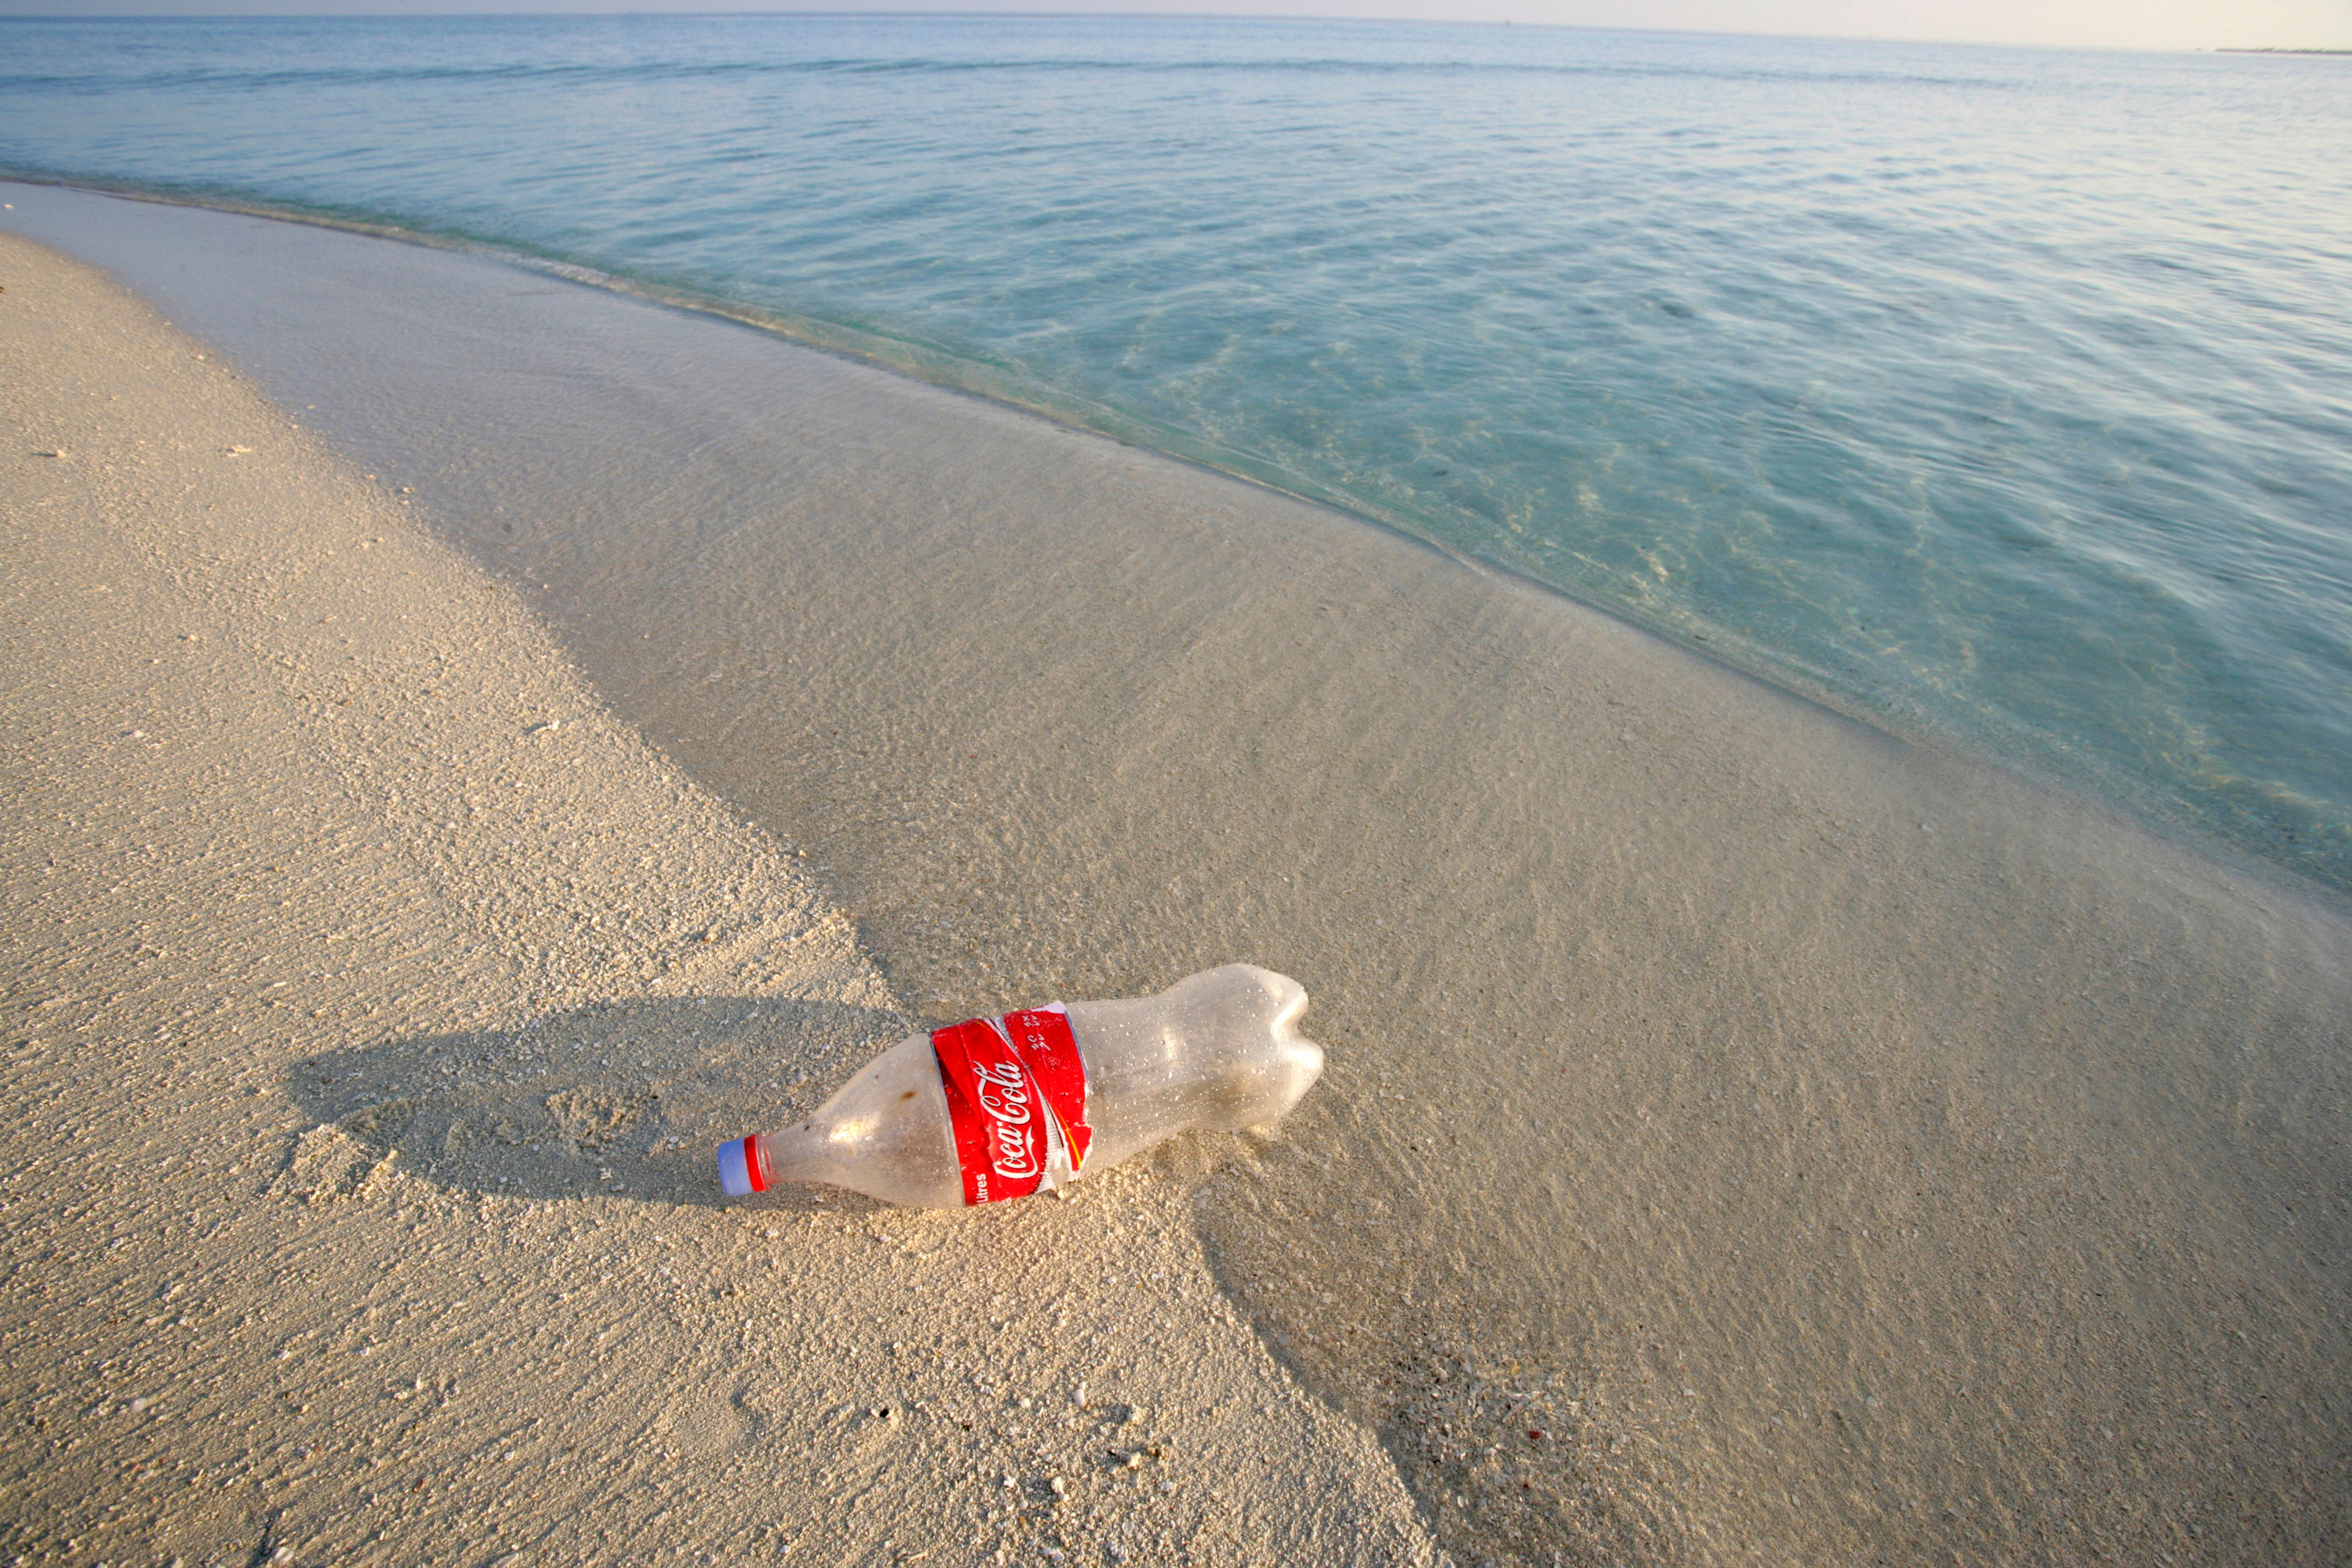 These Massive Brands Are The World's Biggest Plastic Polluters